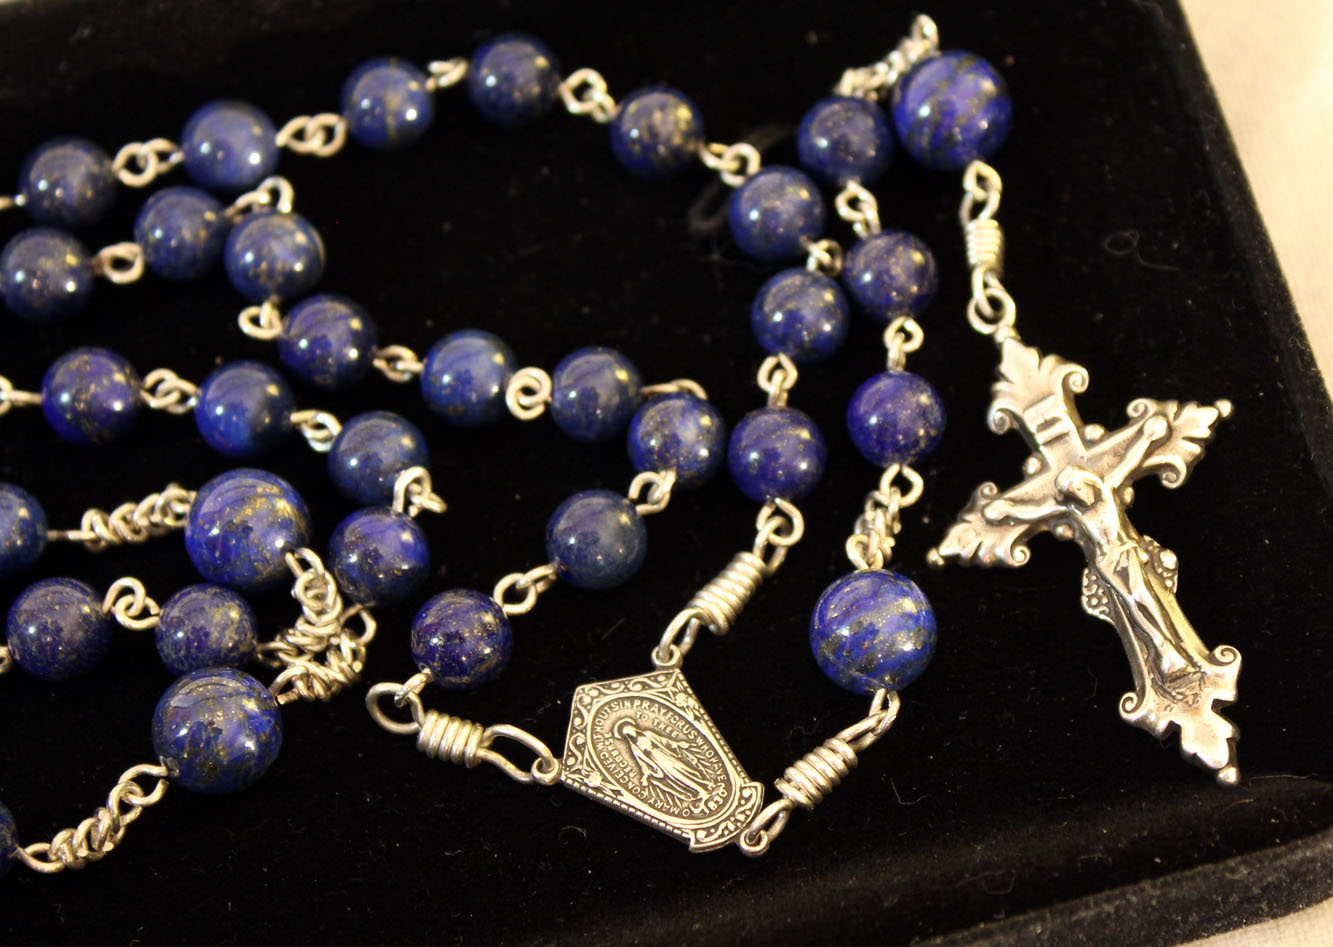 Lapis Lazuli Rosary, handmade sterling silver chain, bows and eyelets and hand cast sterling parts by Francis Koerber.